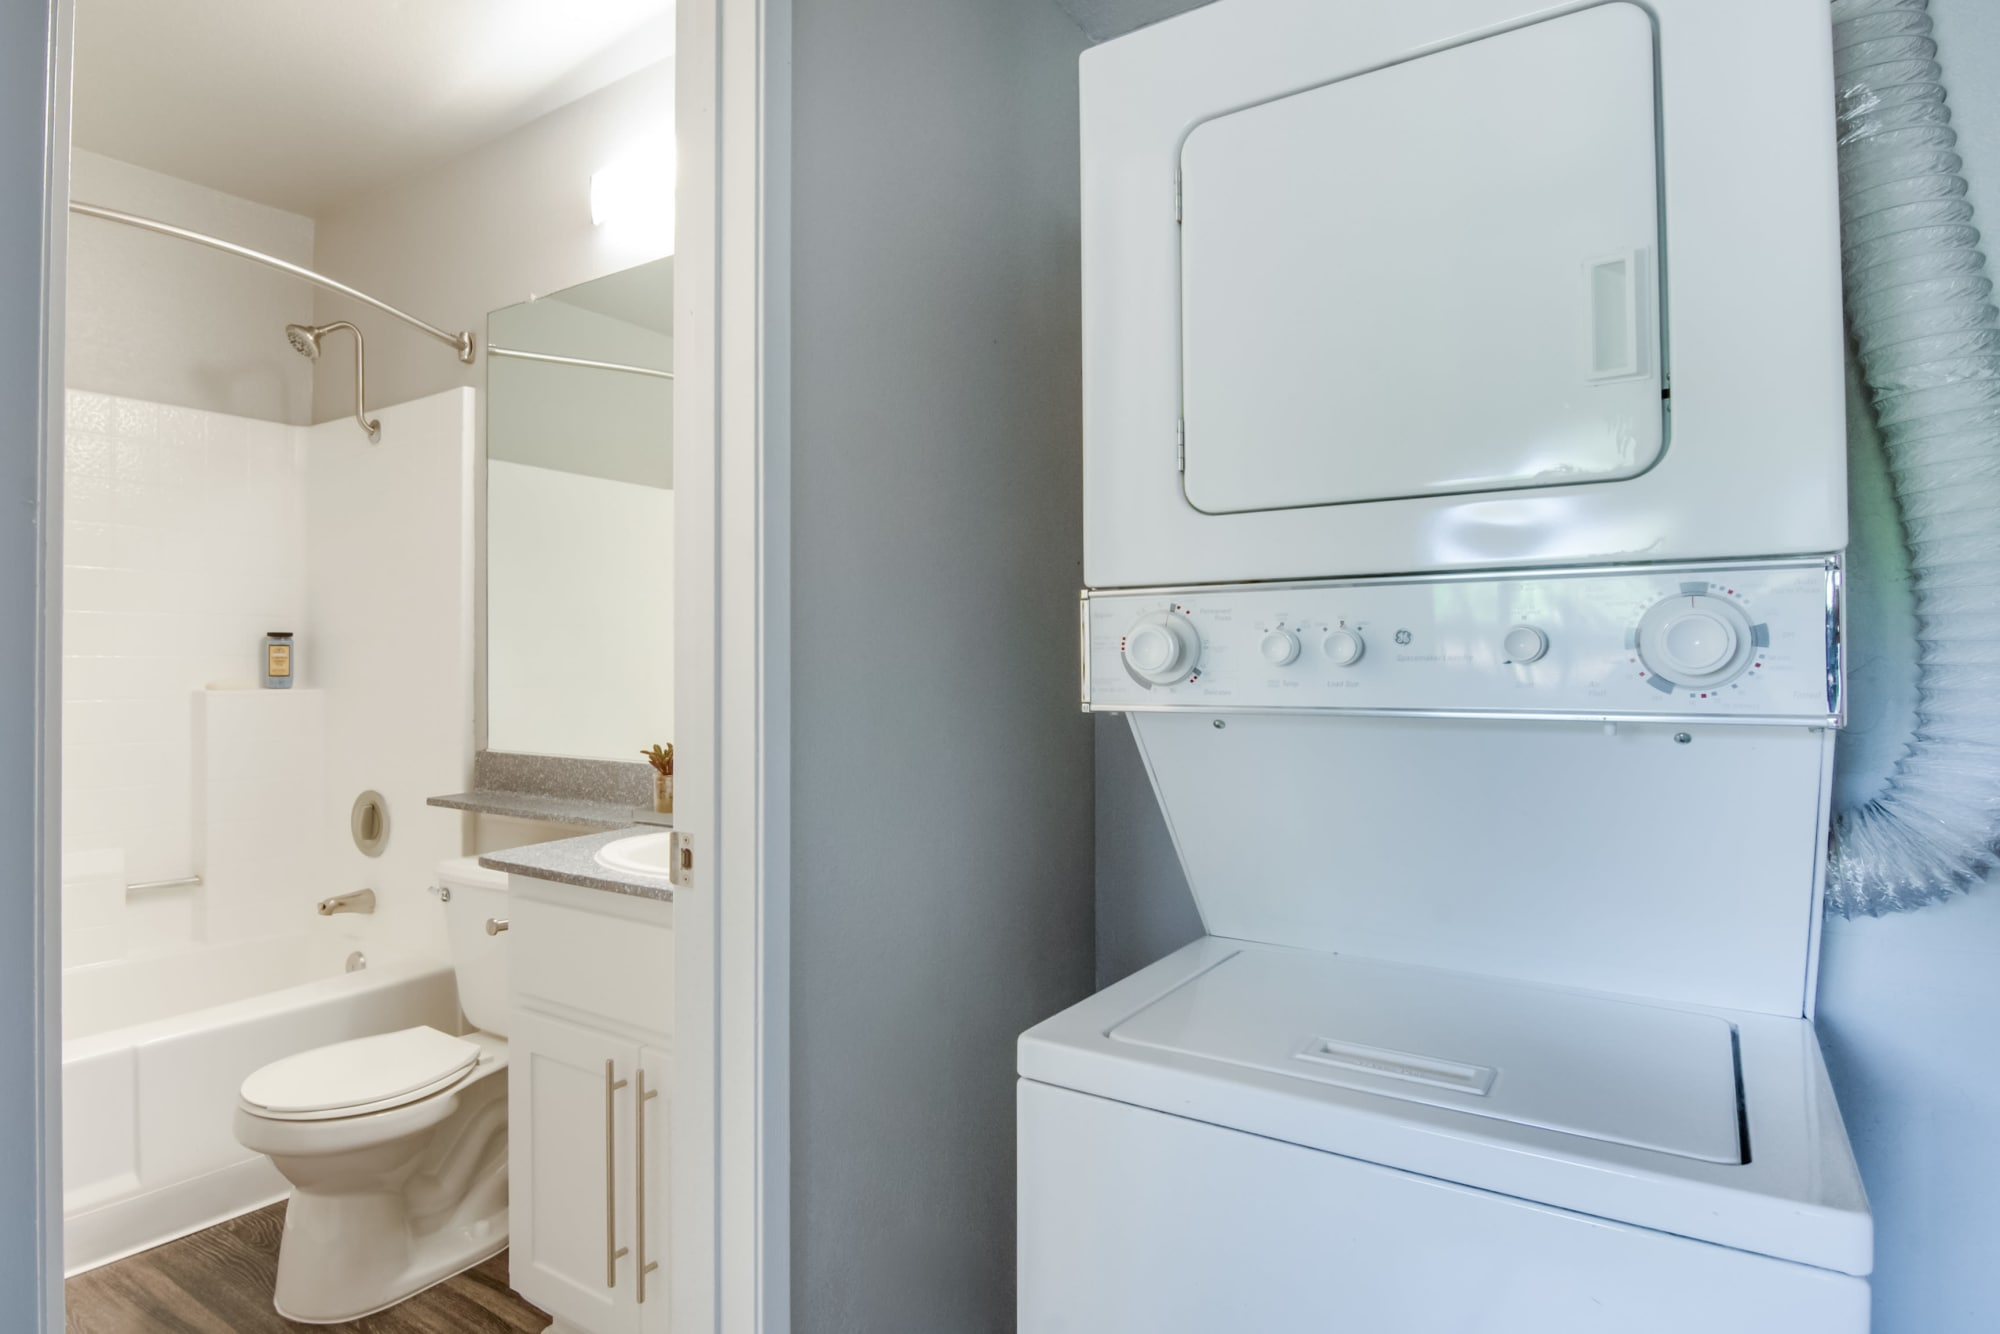 Washer and dryer next to the bathroom at Terra Nova Villas